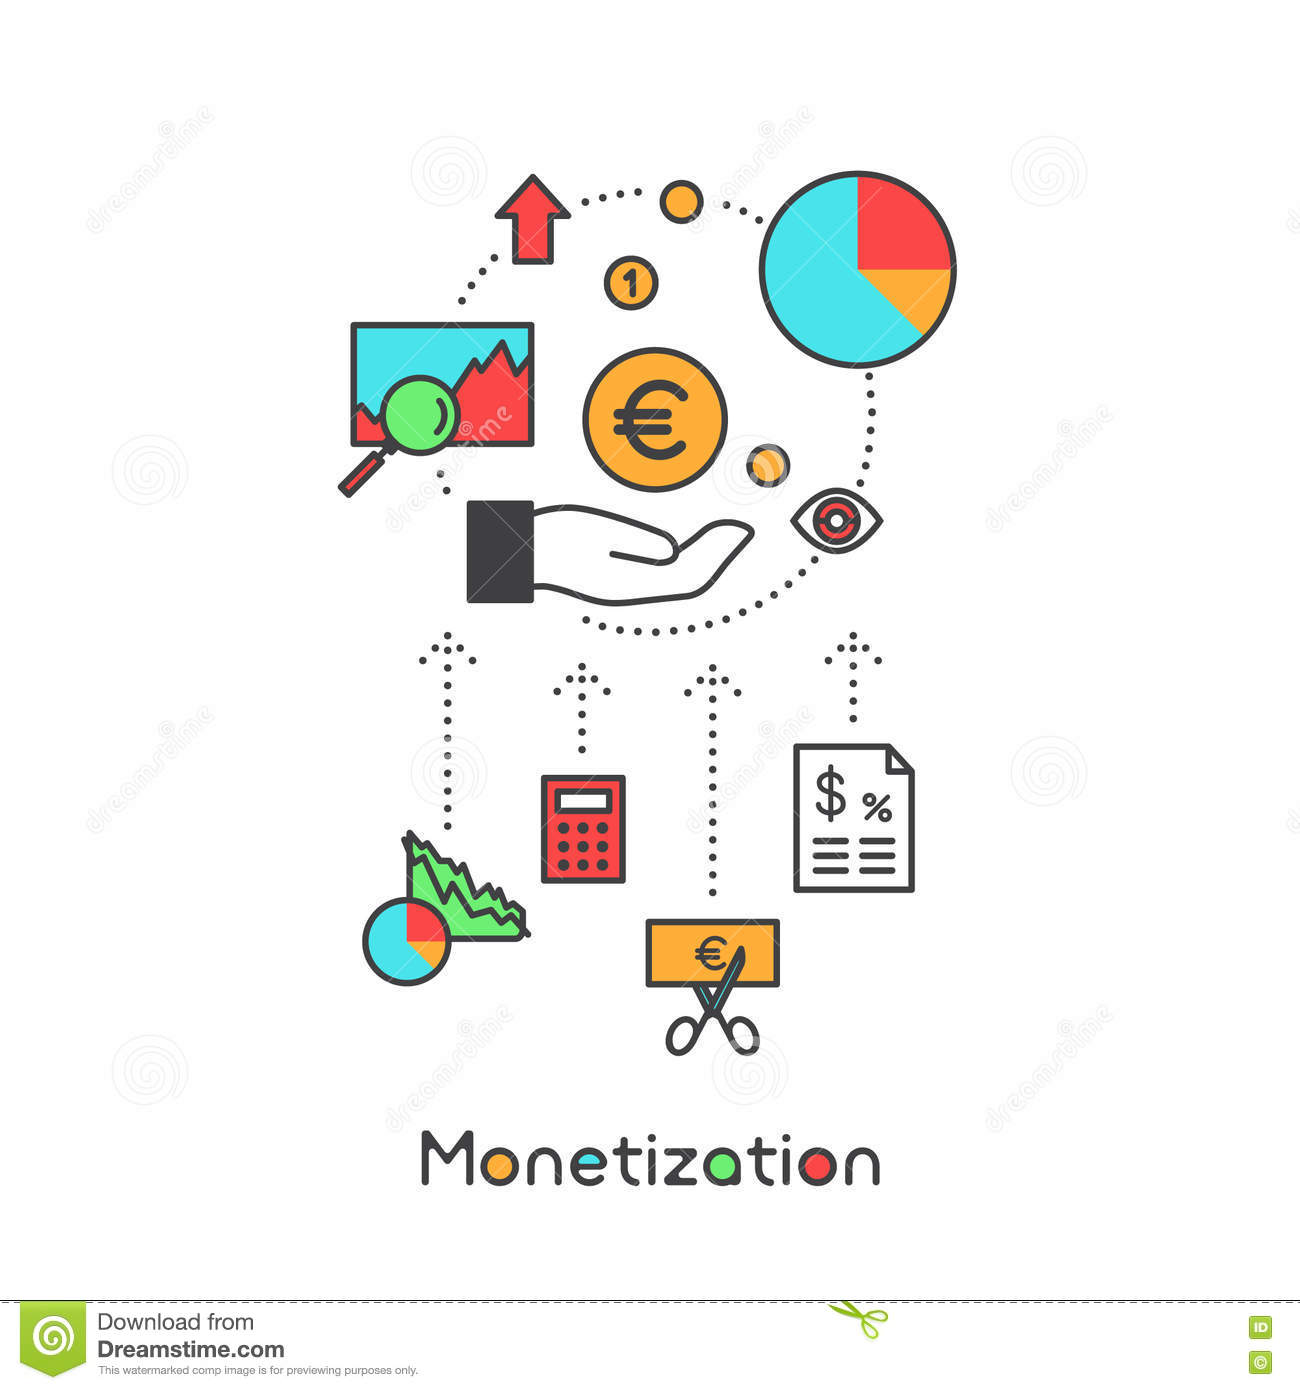 Monetization proces